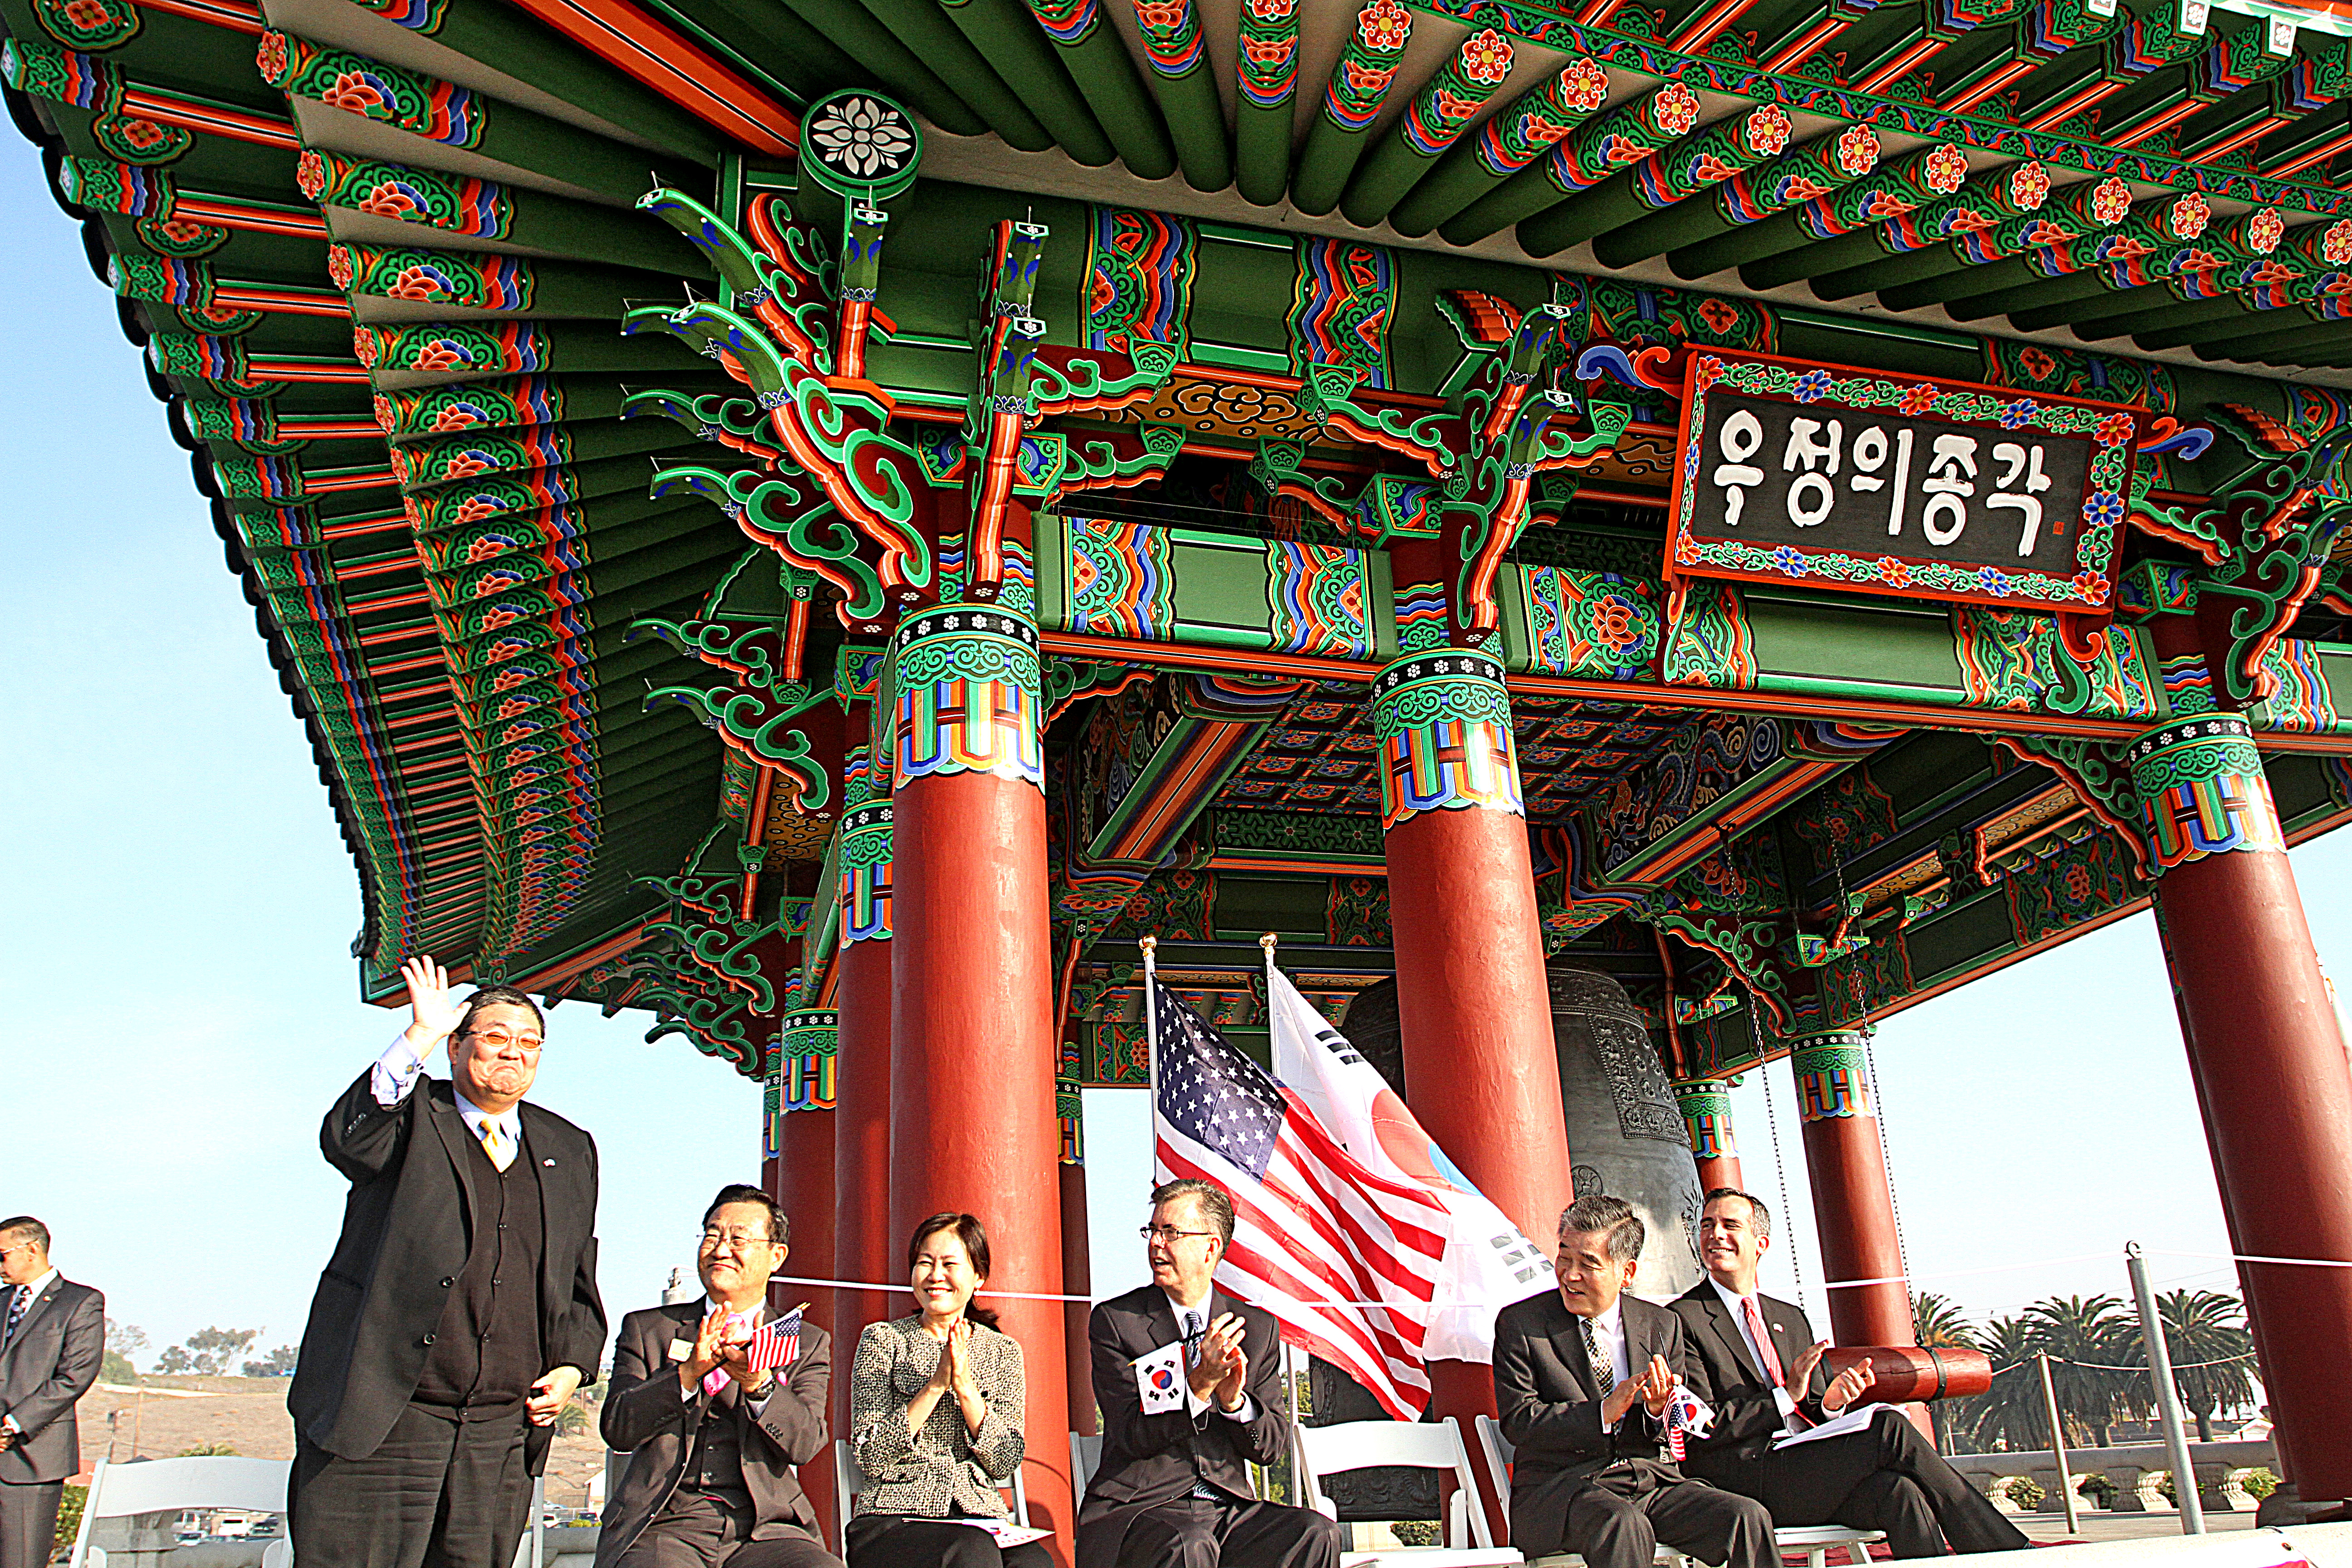 21_Korean_Friendship_Bell_Rededication_Ceremony-_January_10__2013.JPG